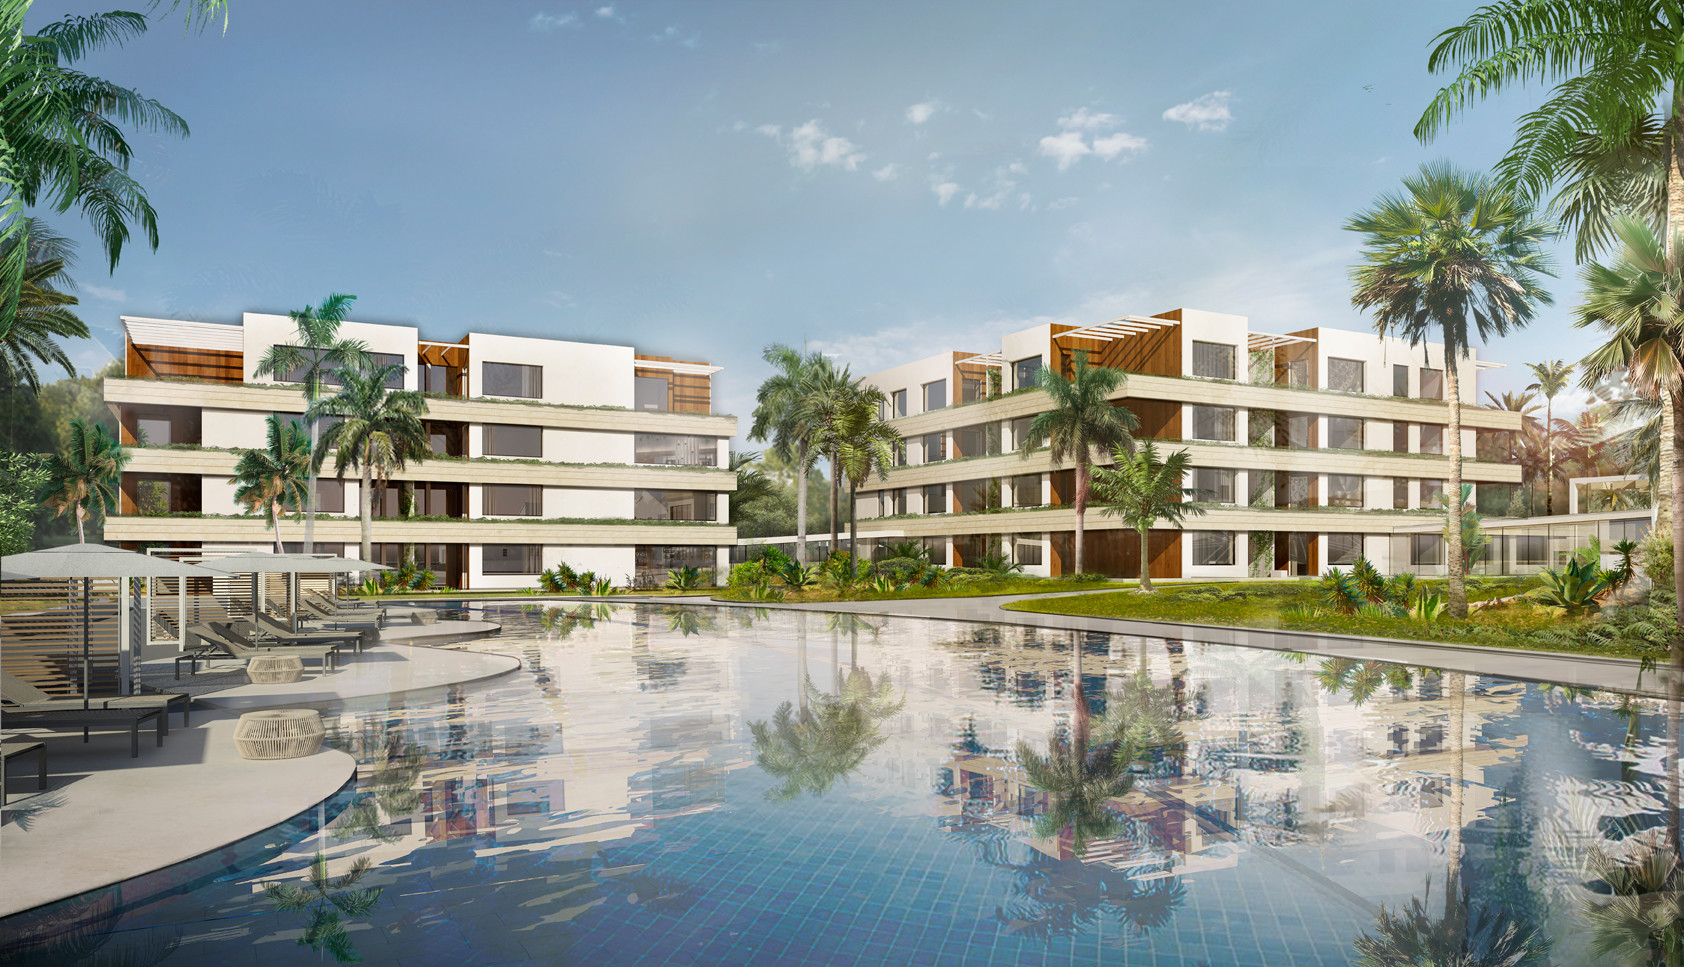 news-main-ihg-continues-luxury-expansion-in-europe-by-signing-kimpton-mallorca.1607342658.jpg